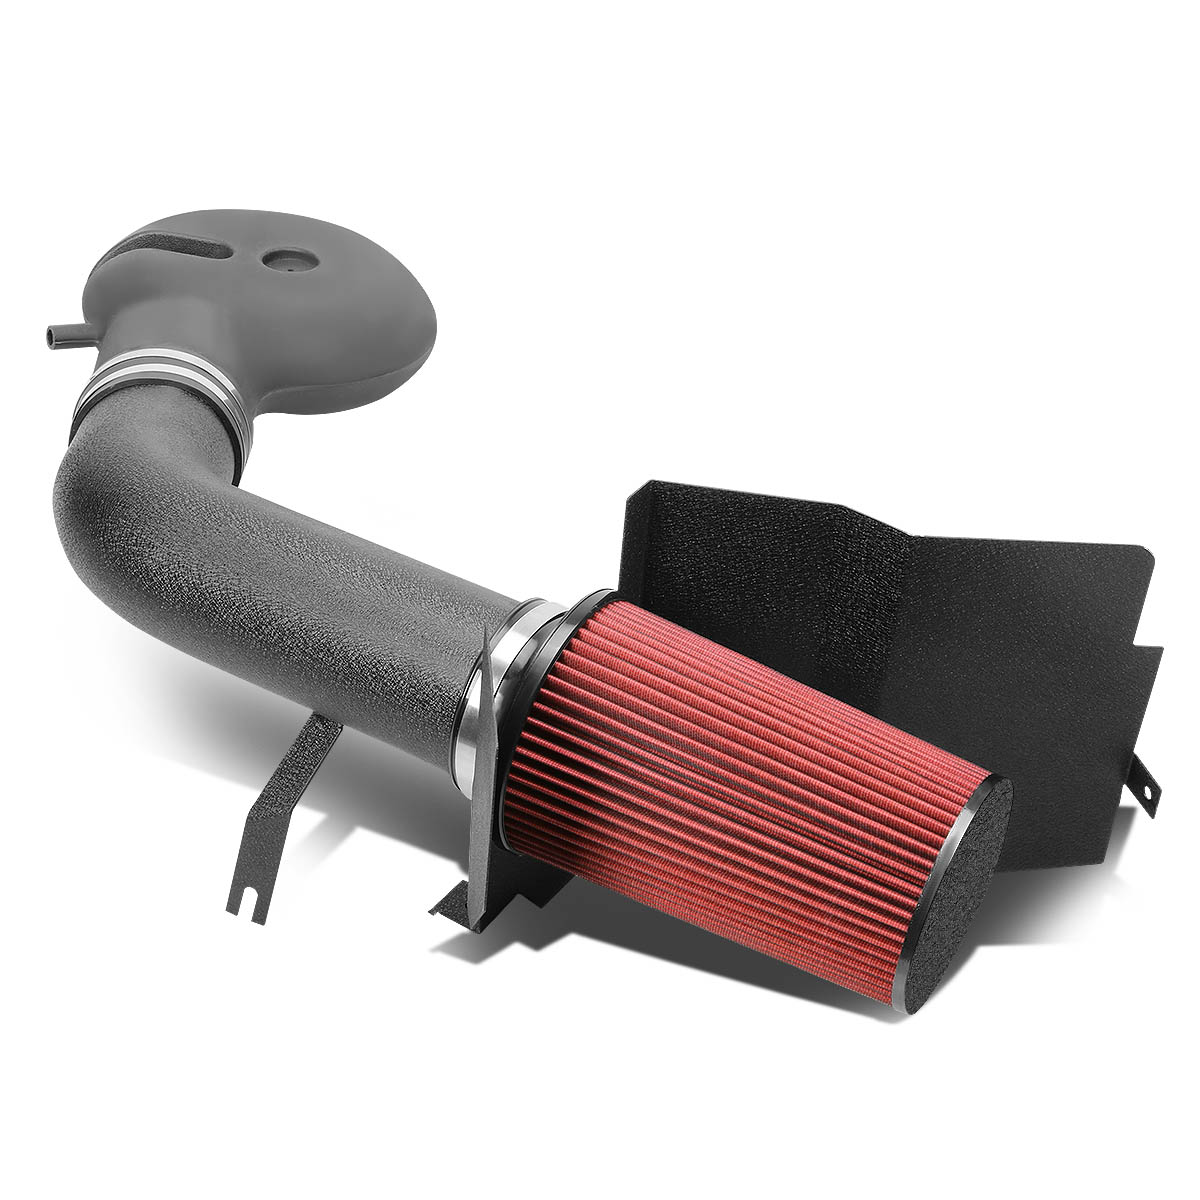 "FOR 97-99 DAKOTA//DURANGO 5.2//5.9 COATED ALUMINUM 4/""COLD AIR INTAKE+HEAT SHIELD"